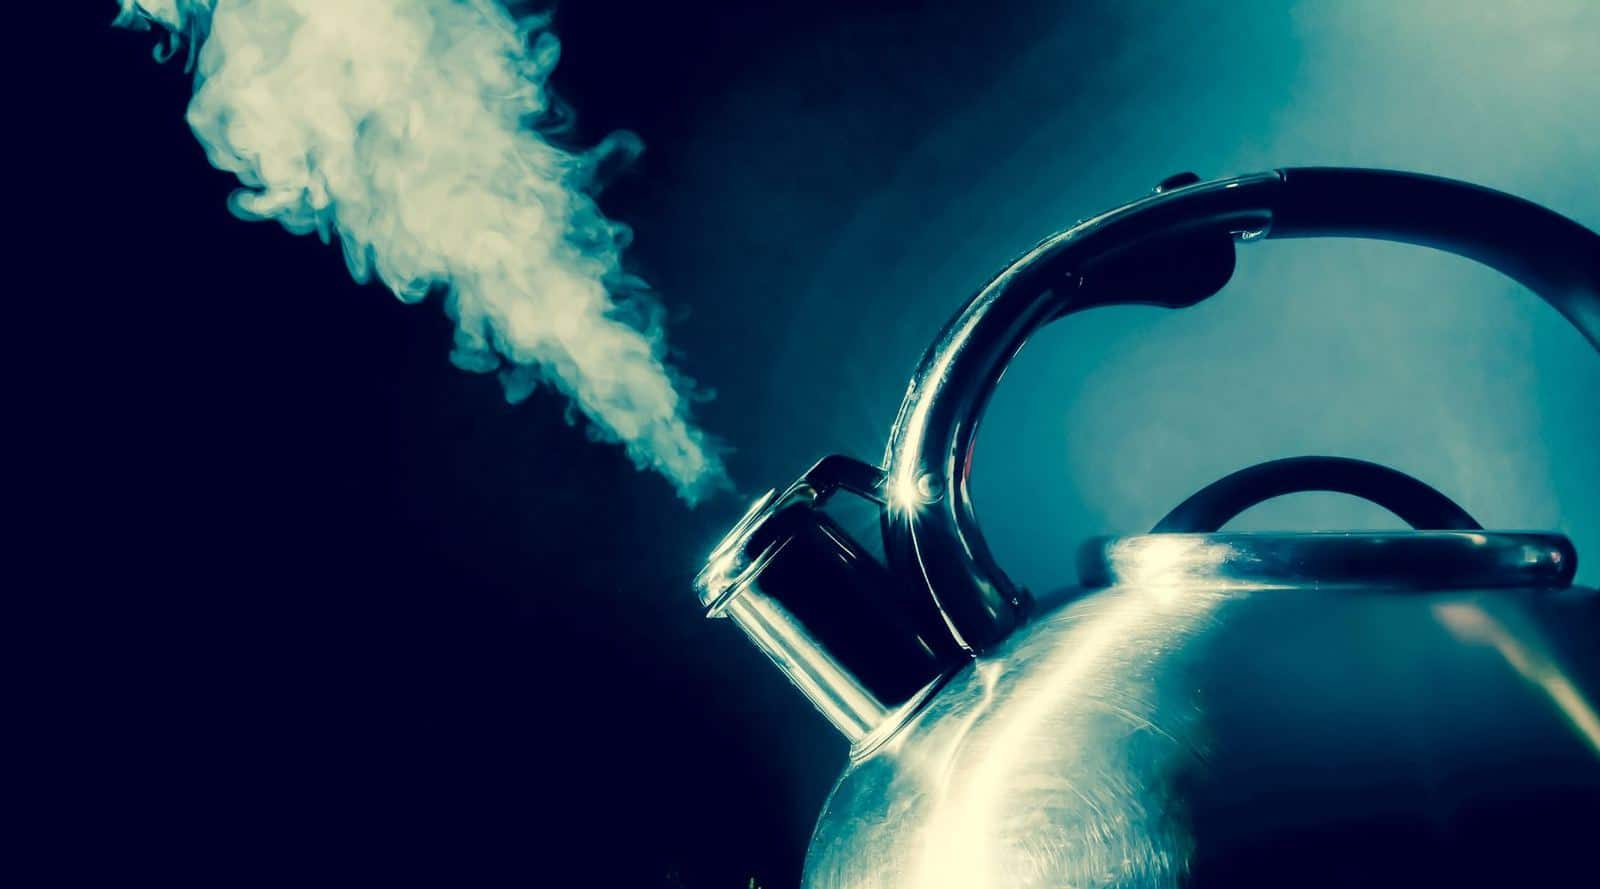 why do teapots whistle? why does a boiling kettle make noise?